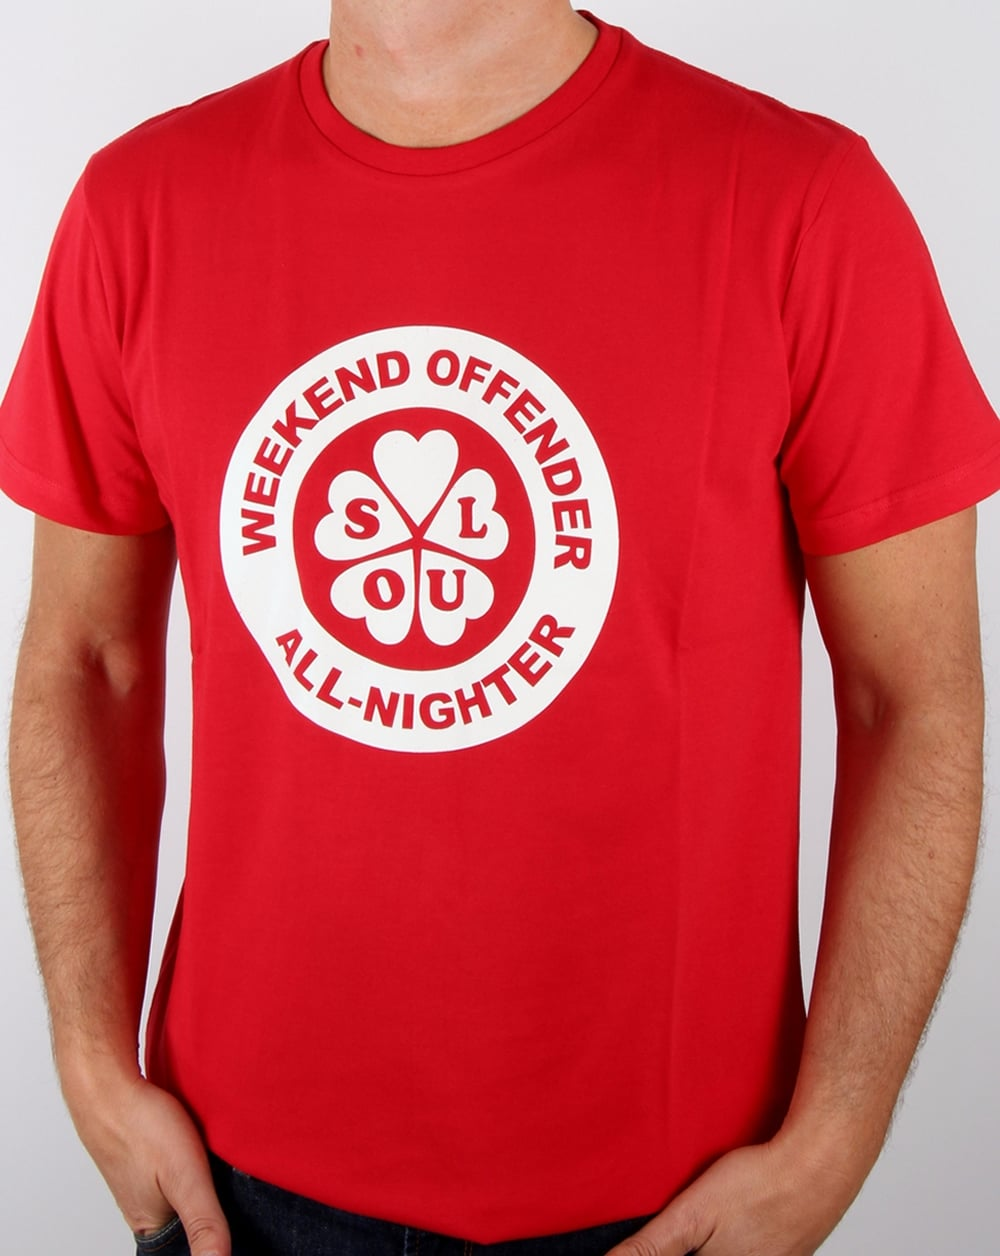 Weekend Offender All Nighter T Shirt Ruby